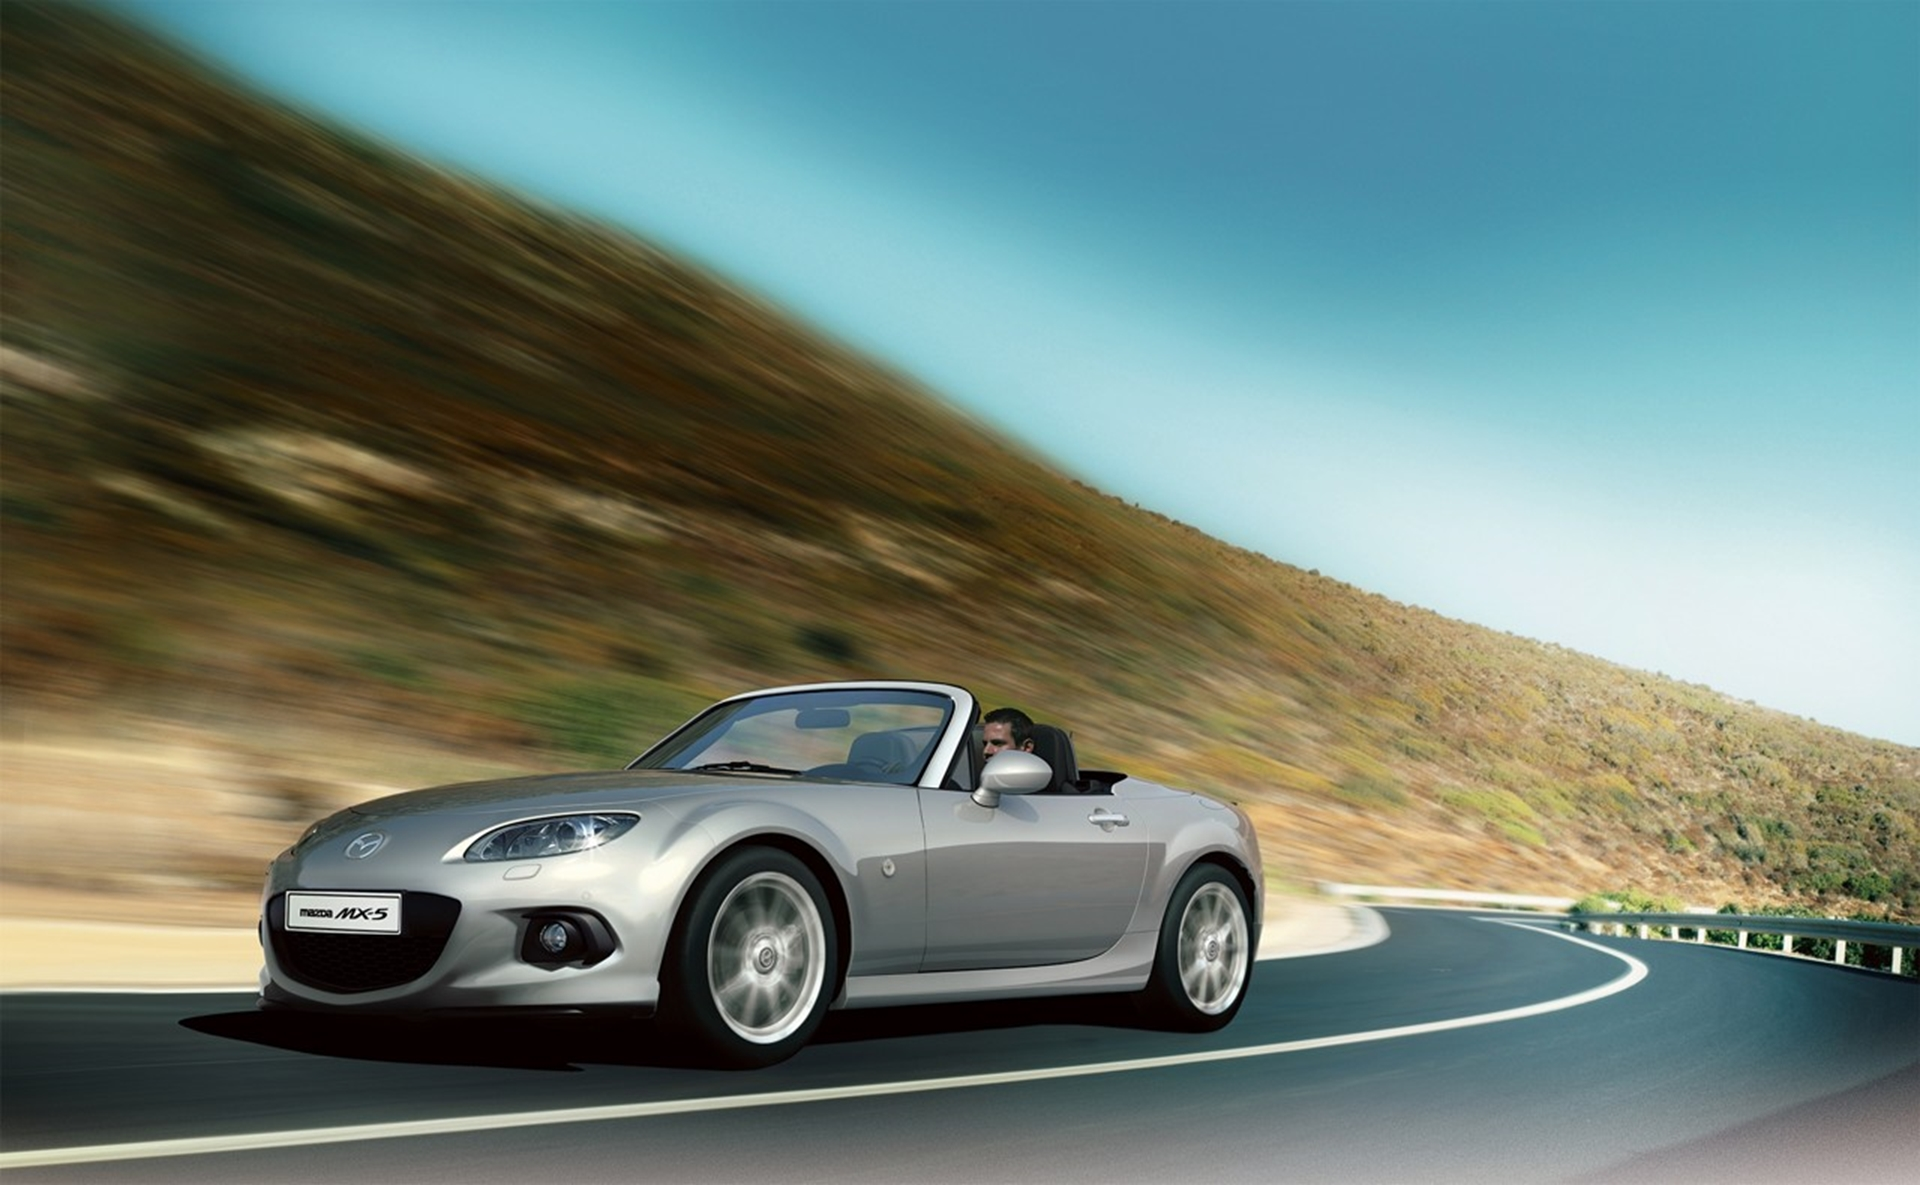 Upgraded Mazda MX-5 UK